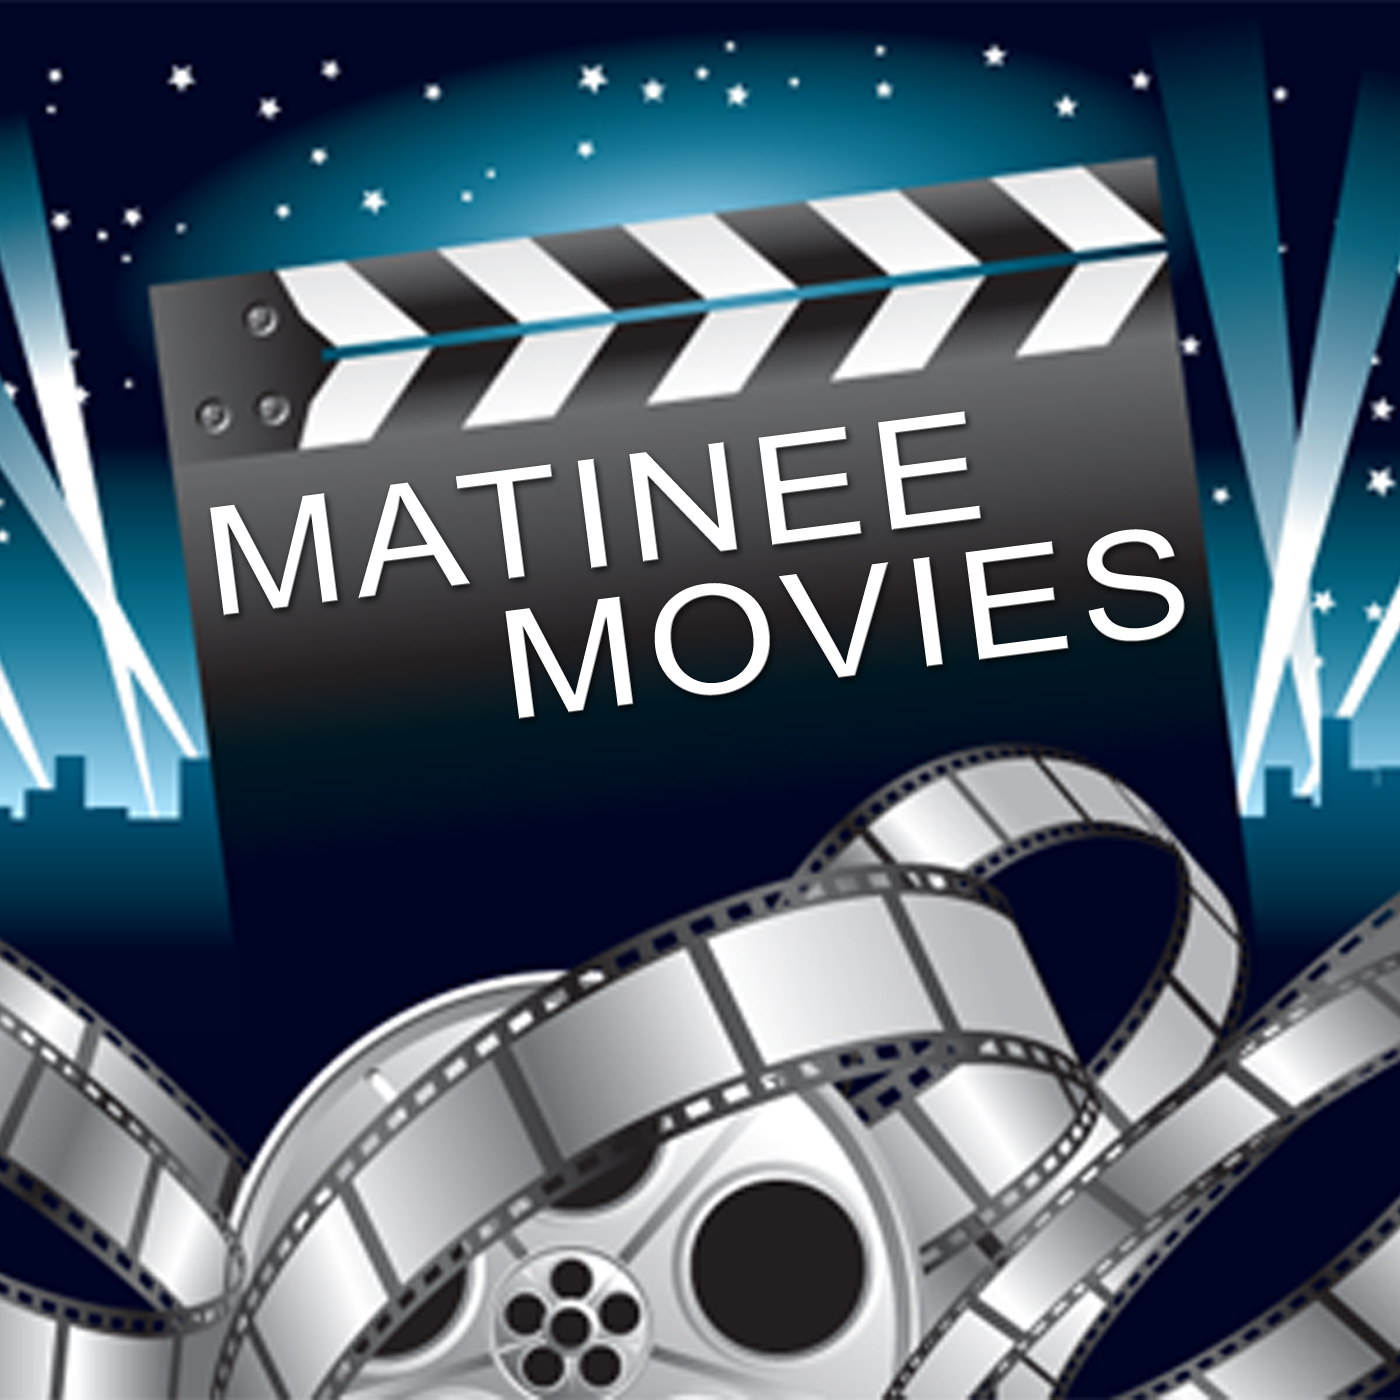 10880 Movie free clipart.